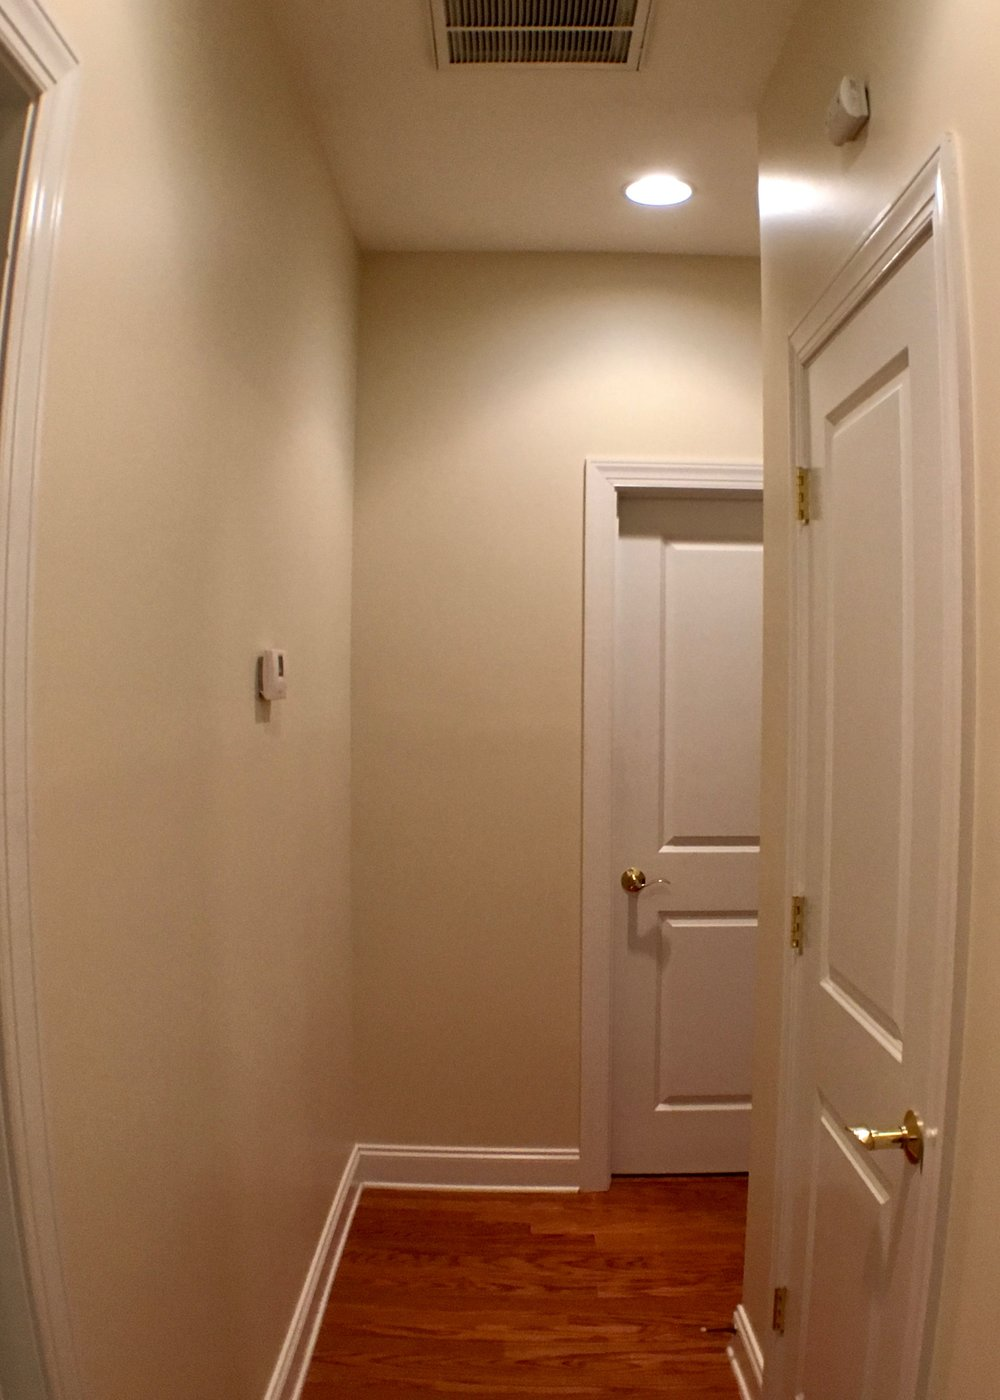 ENTIRE INTERIOR REPAINT: SAND WALLS SMOOTH, BENJAMIN MOORE NATURA EGGSHELL